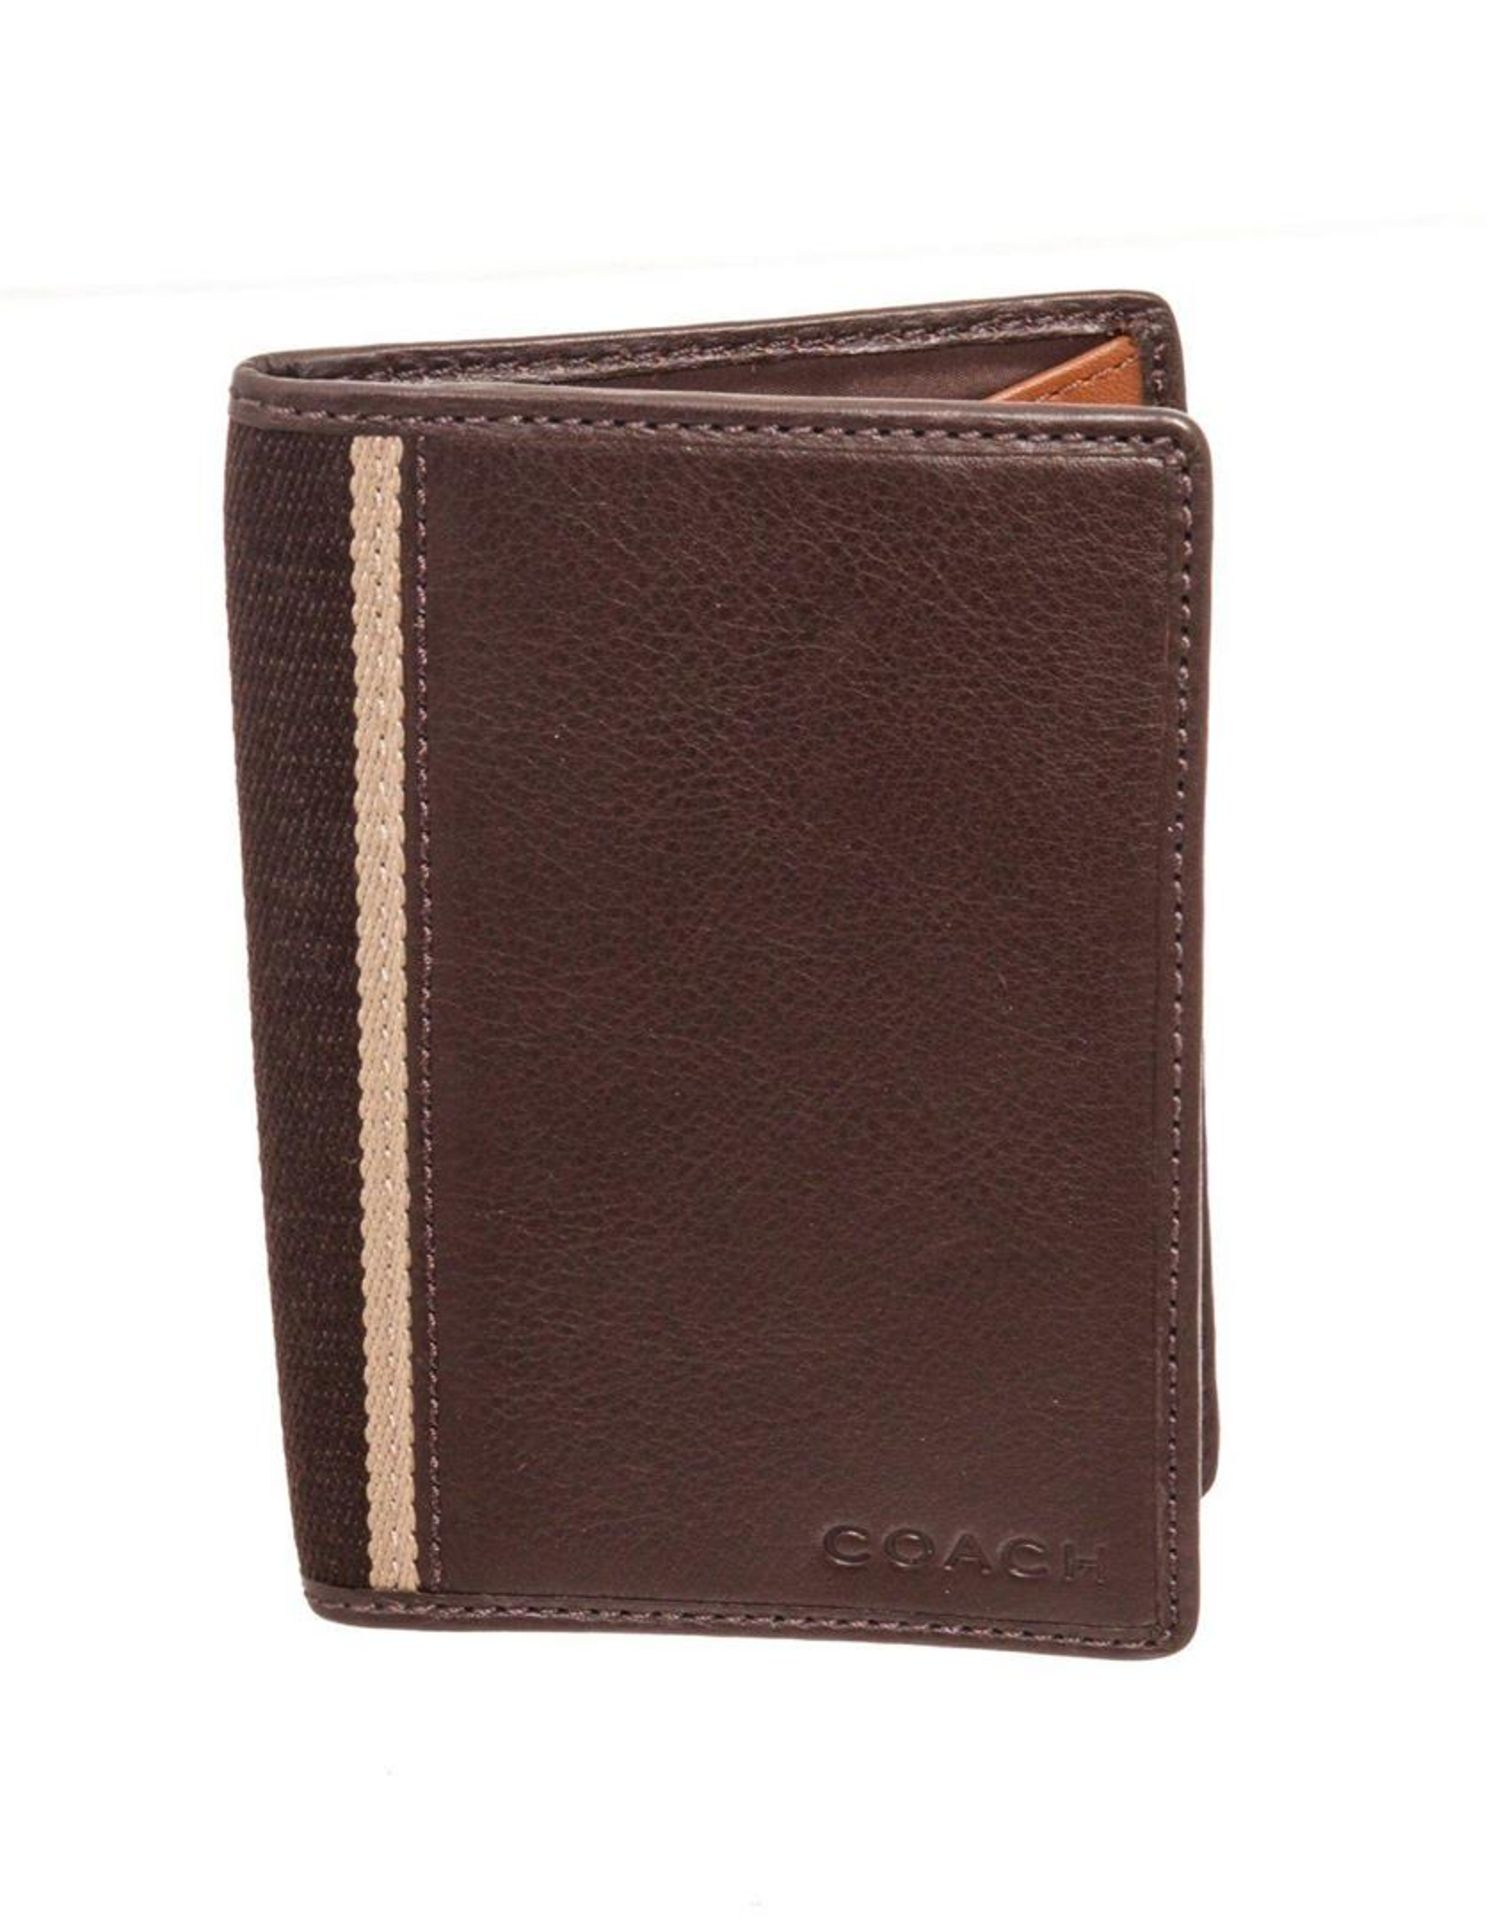 Coach Brown Leather Heritage Web Passport Holder